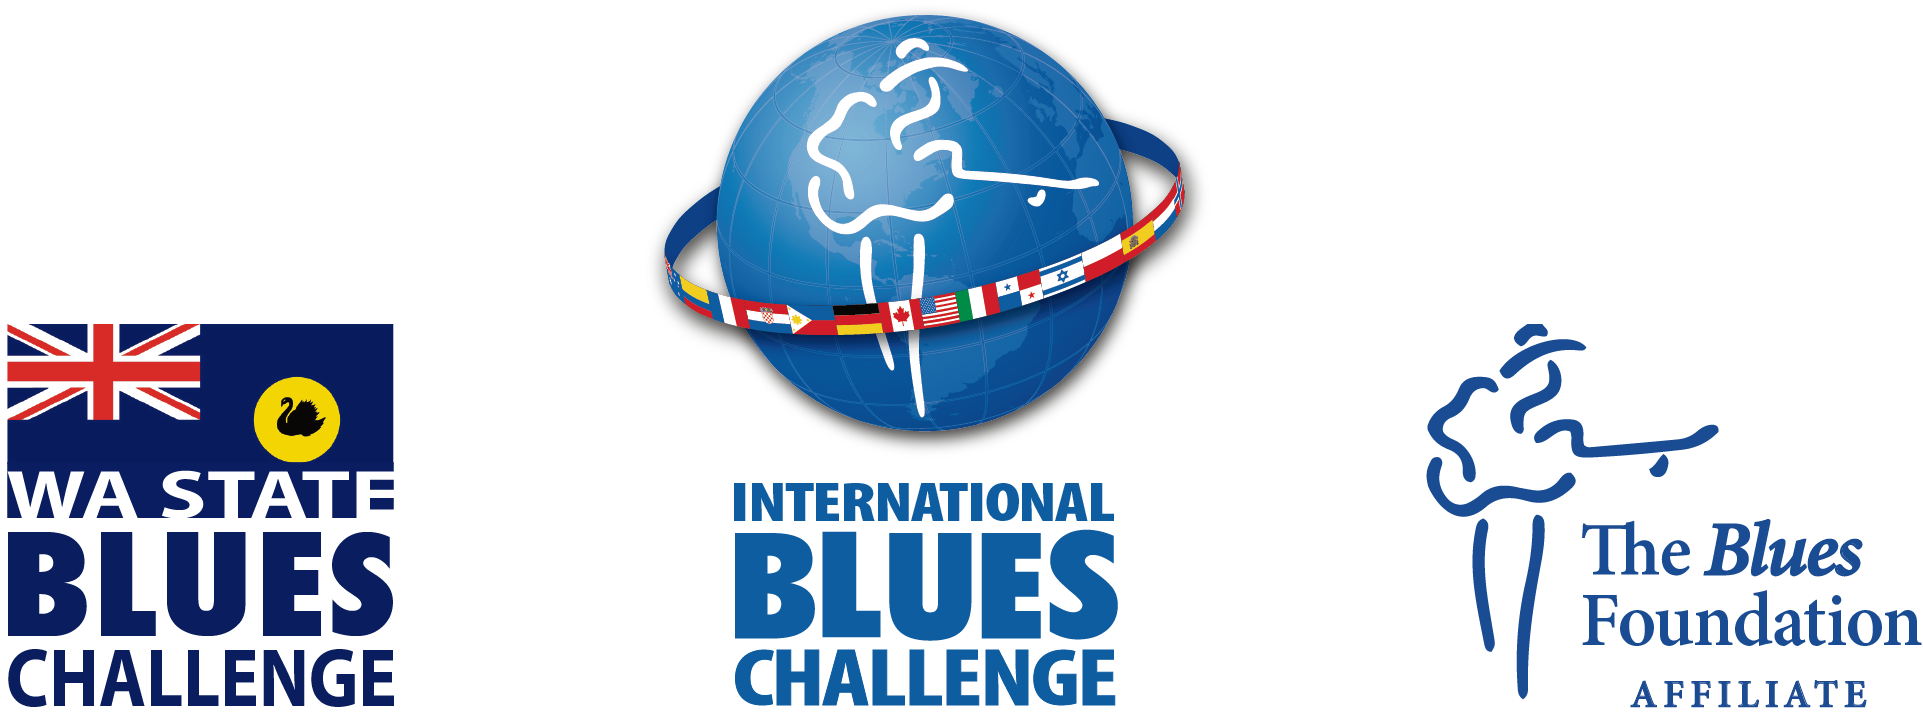 Blues Challenge & Affiliate Logos